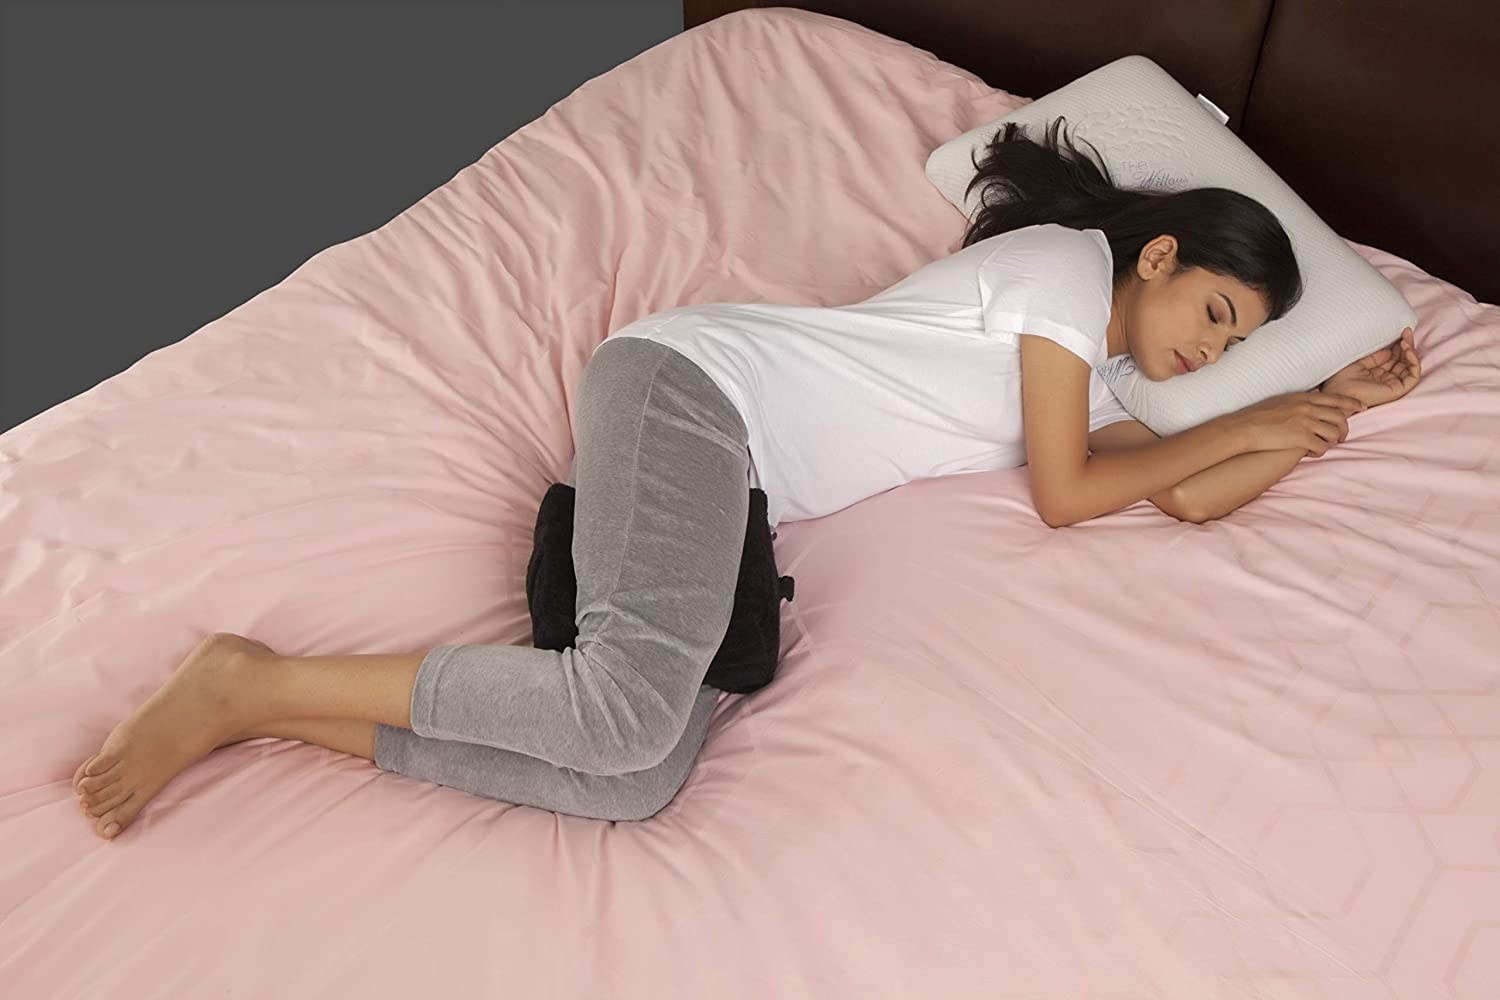 A person sleeping with the pillow between their legs.